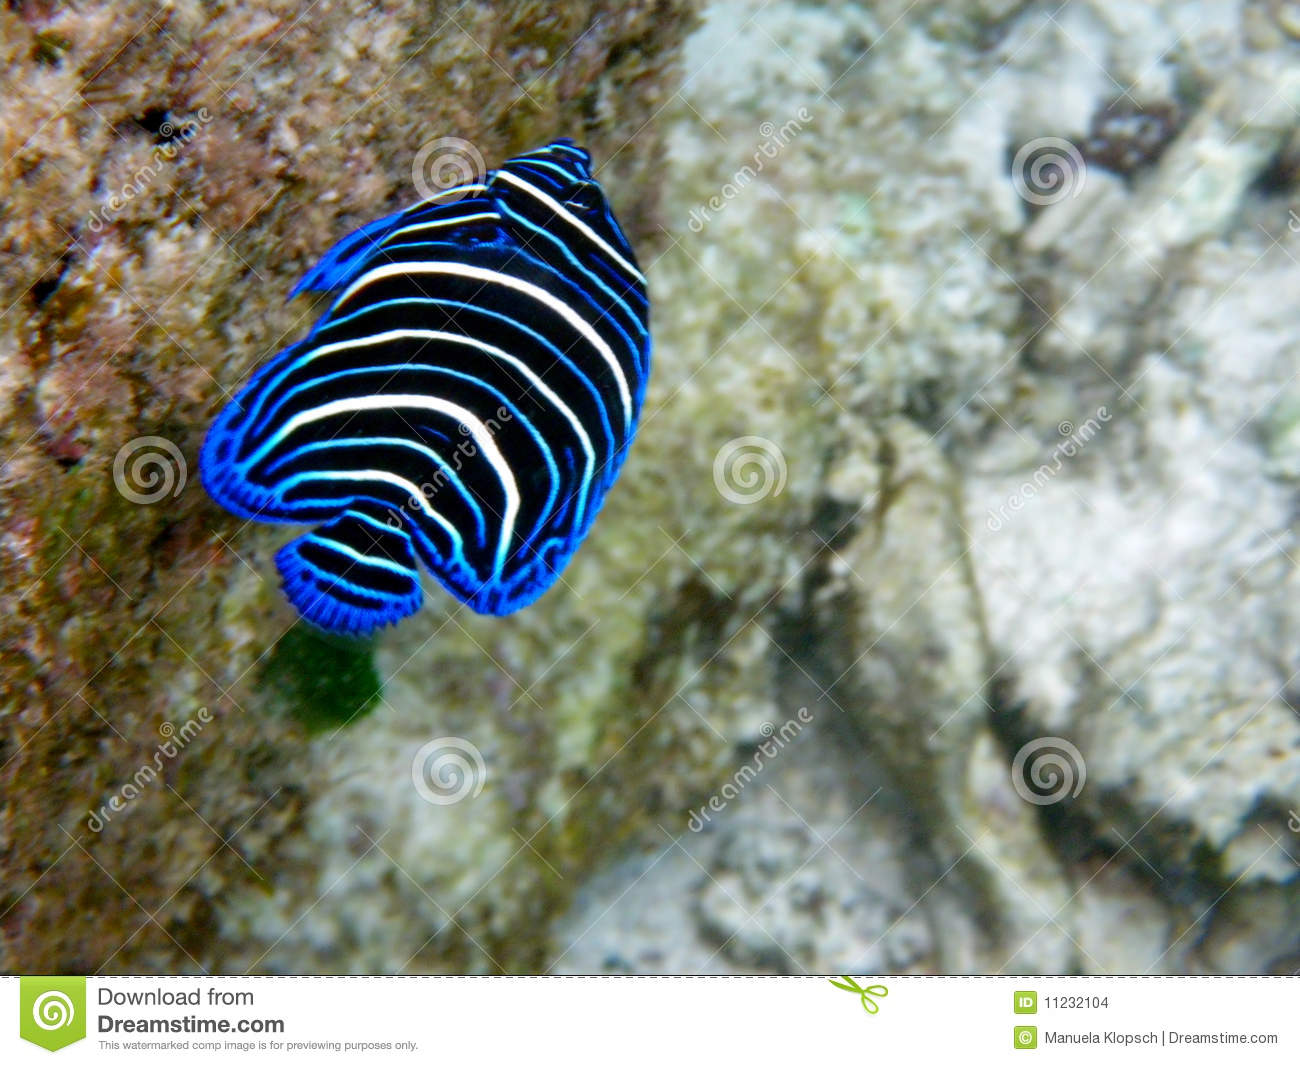 Colorful tropical fish stock photo. Image of ocean, blue - 11232104